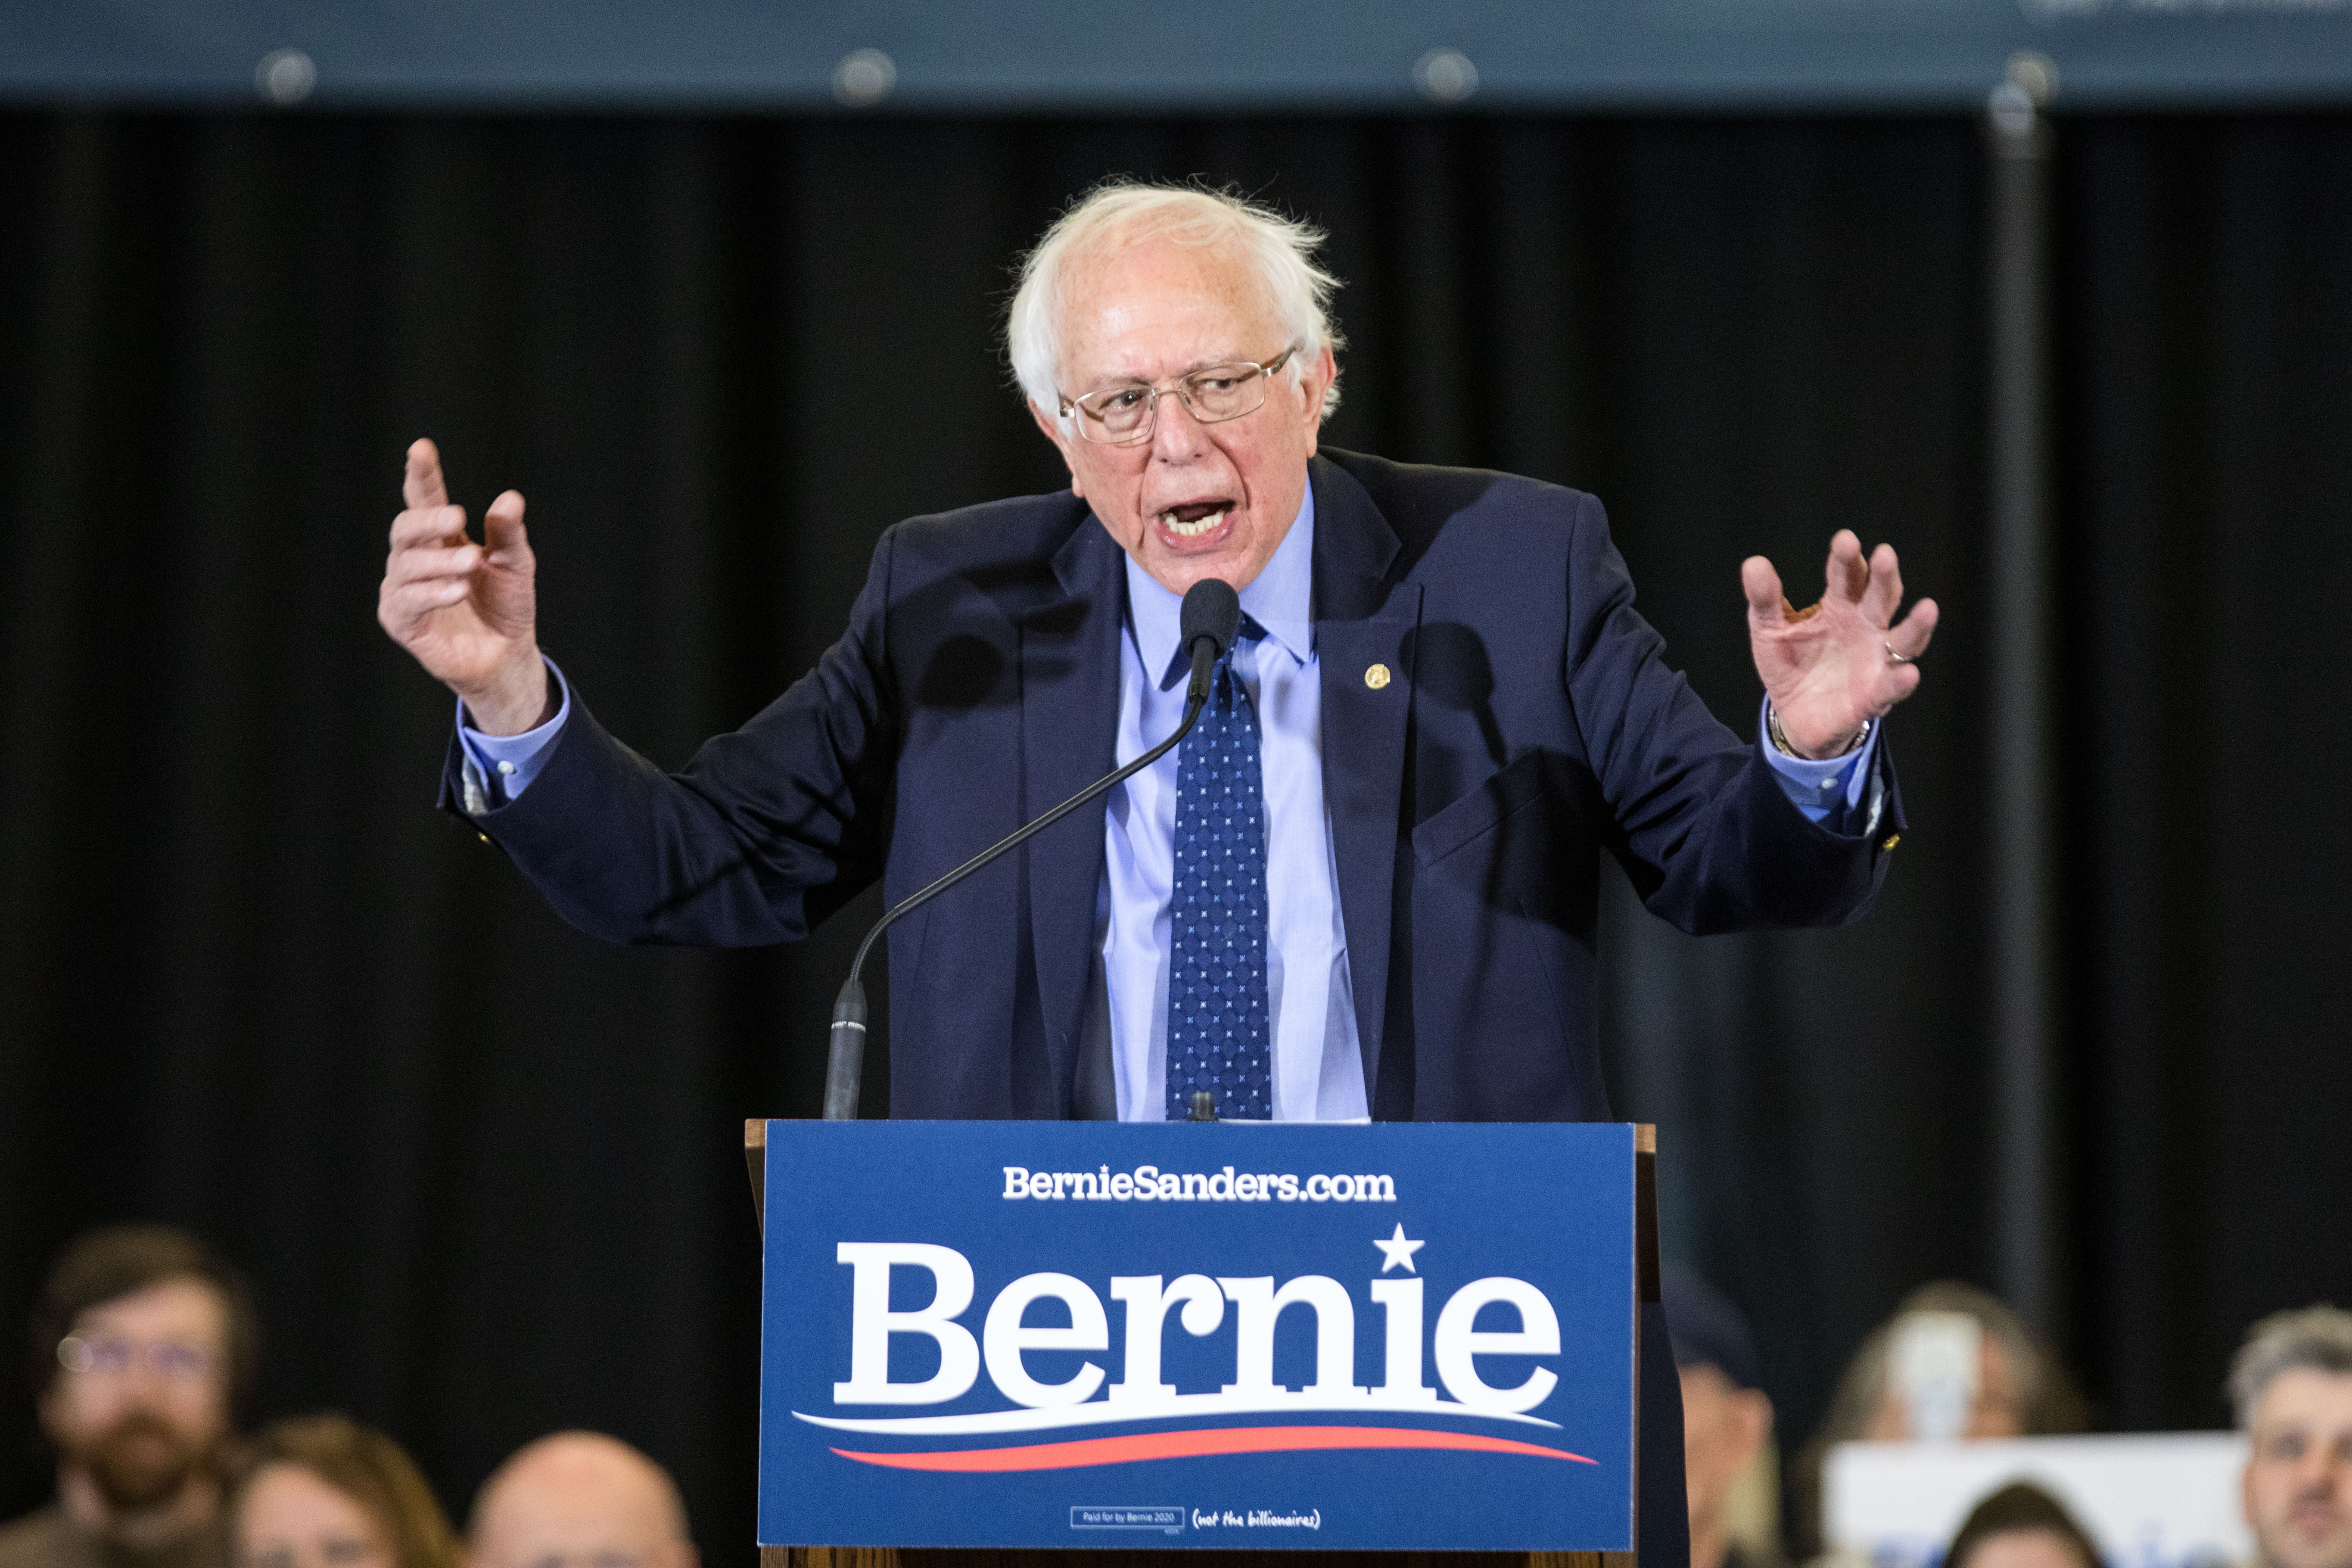 2020 Democratic presidential candidate U.S. Sen. Bernie Sanders (I-VT) speaks during his first New Hampshire campaign event on March 10, 2019 in Concord, New Hampshire.